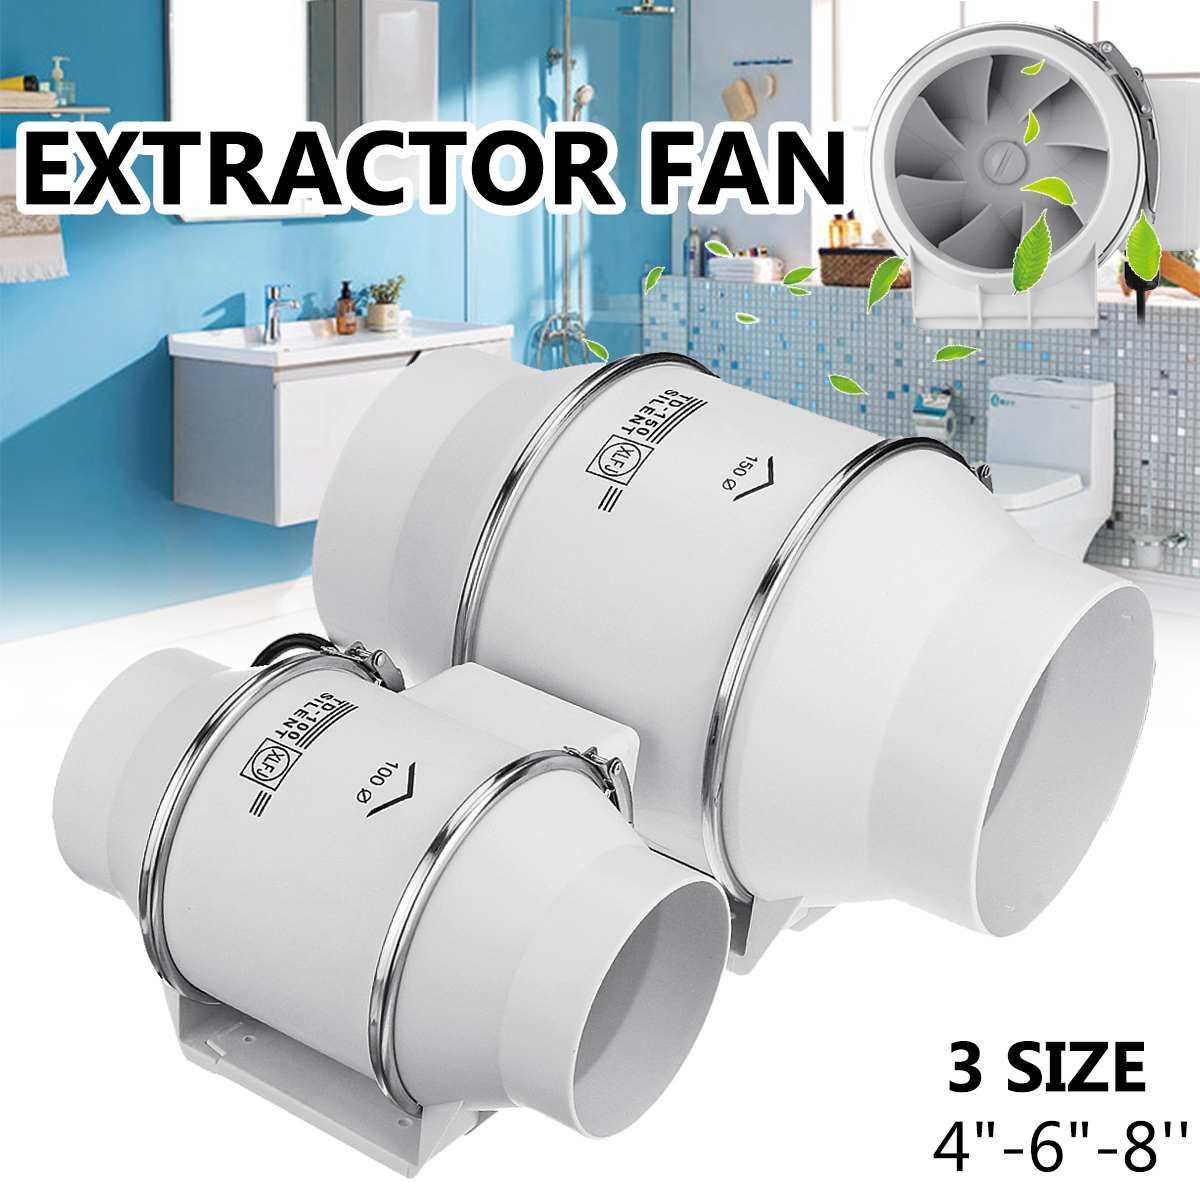 Wall-Extractor Ventilation-Fan Air-Blower Bedroom Exhaust Kitchen Silent For 4/6/8inch-fan